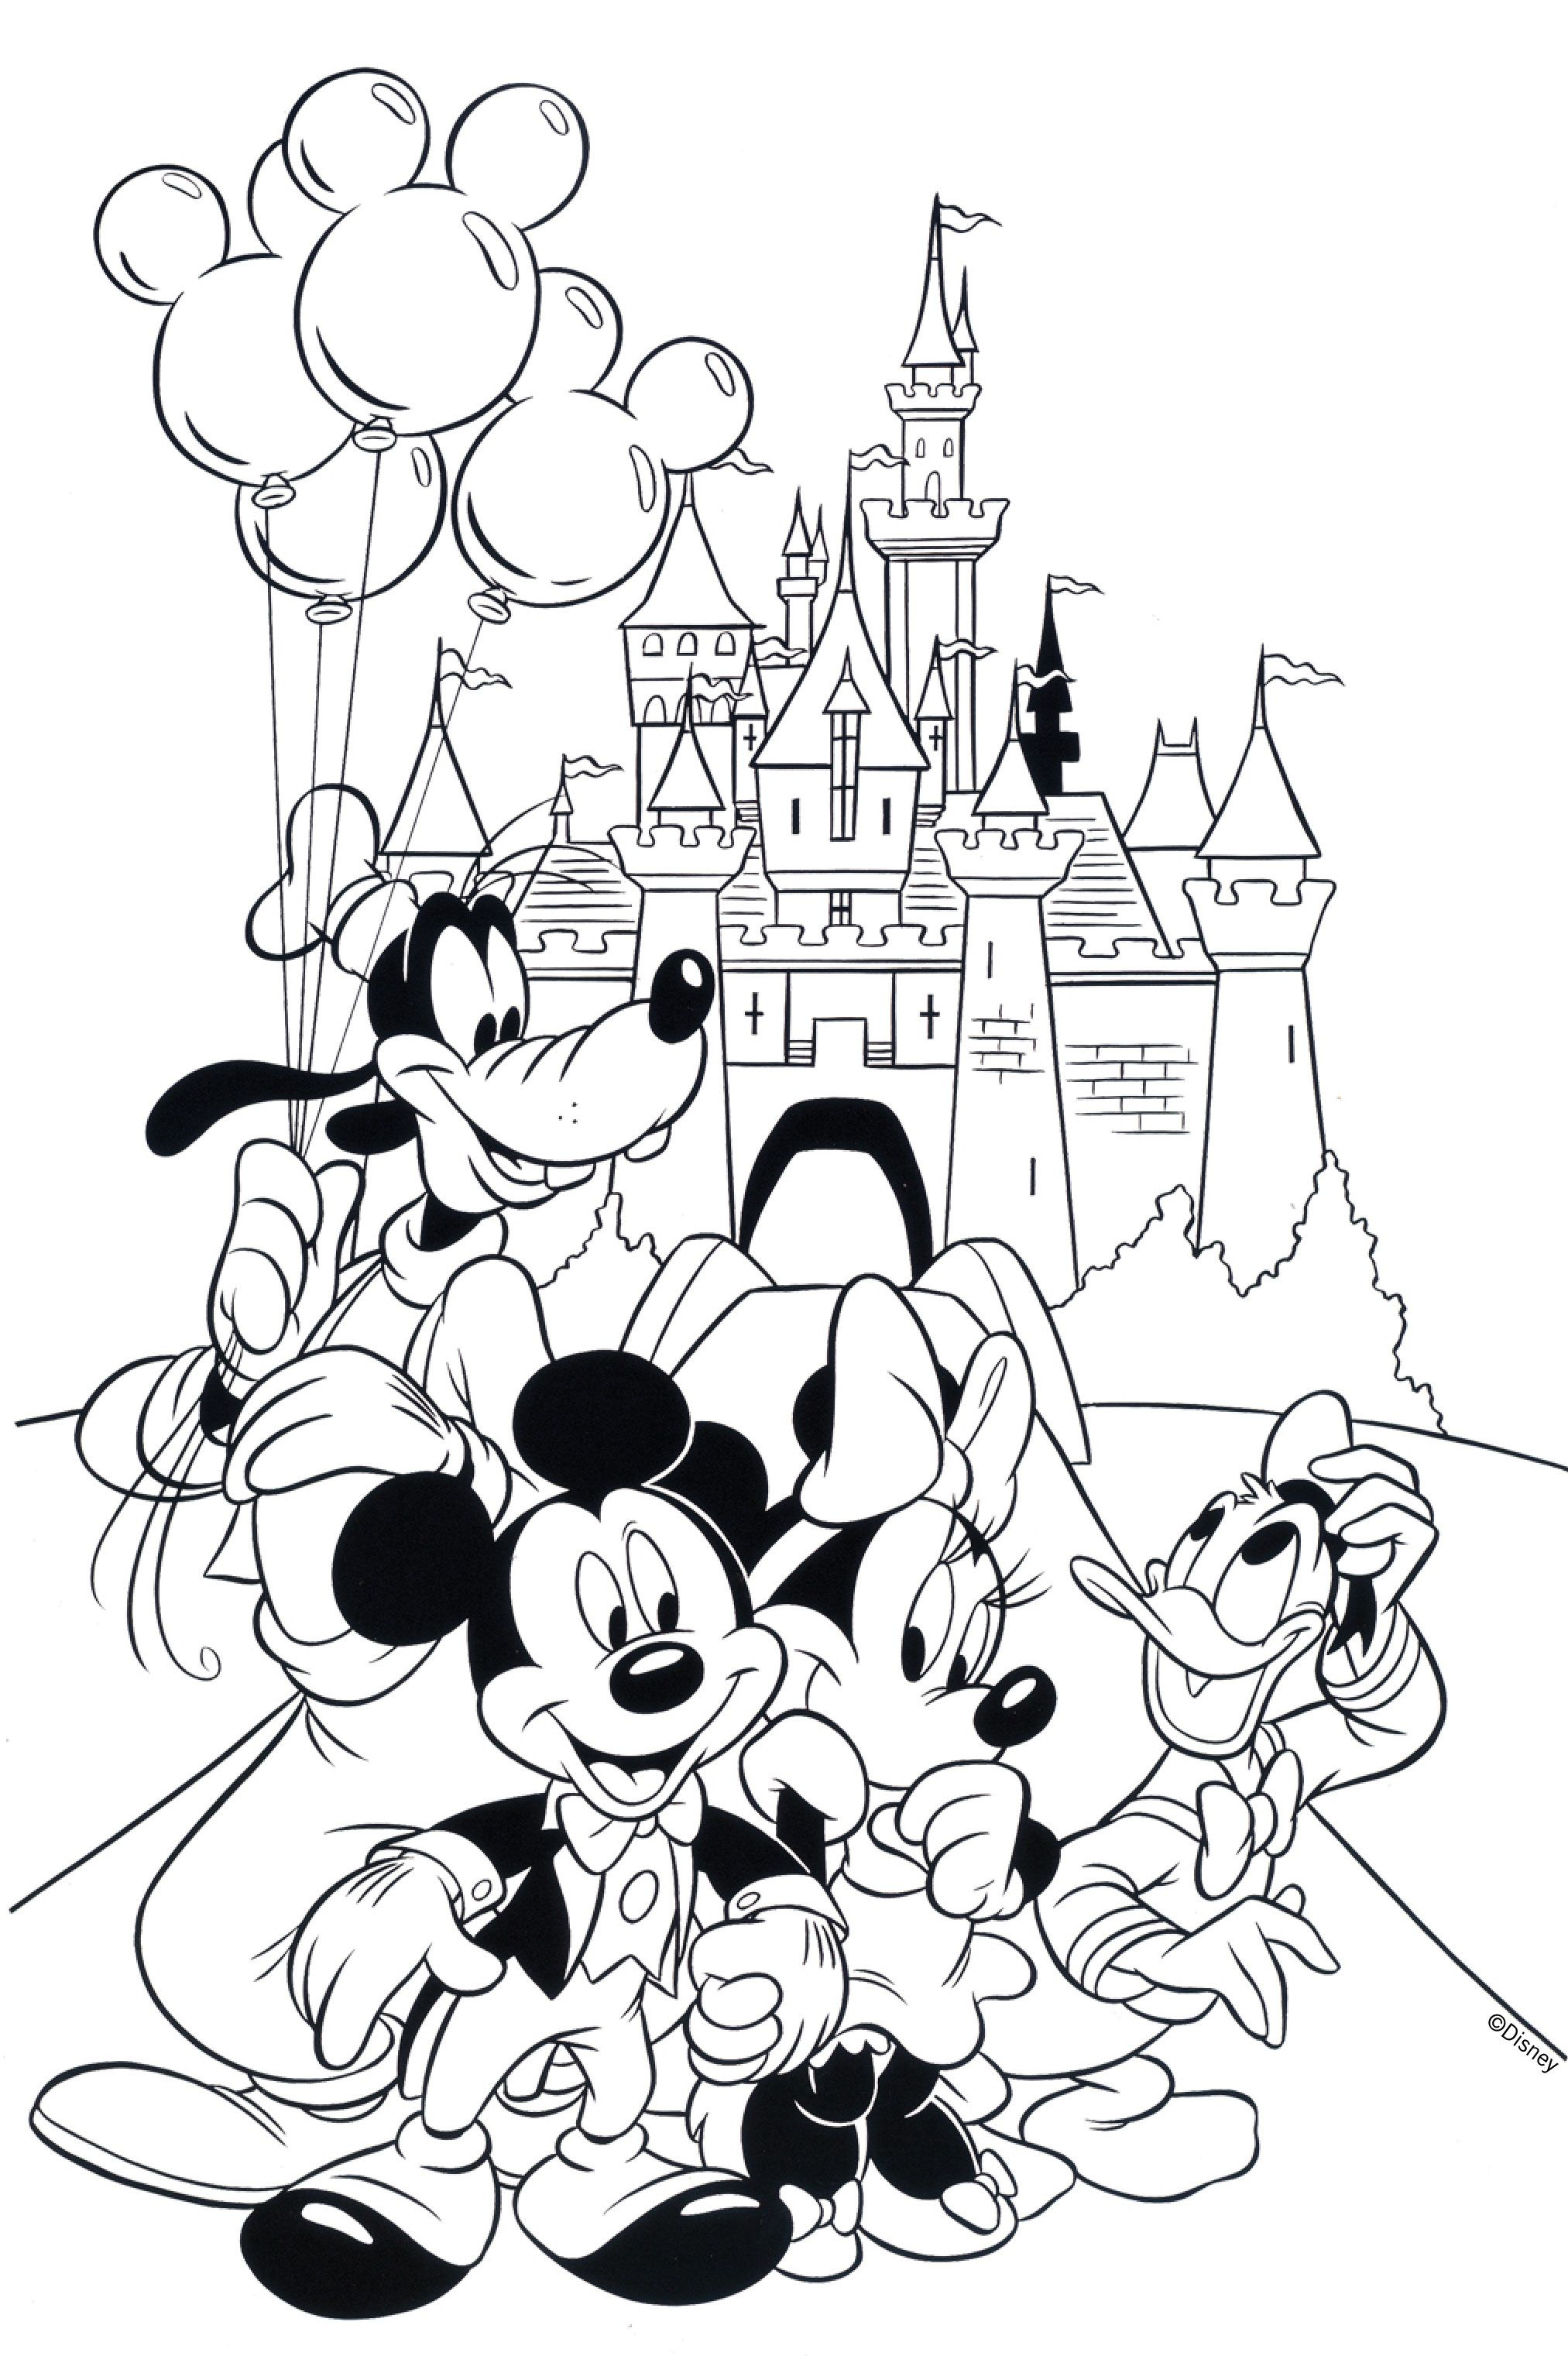 Free Disney Coloring Pages   Coloring Books   Pinterest   Coloring - Free Printable Disney Coloring Pages